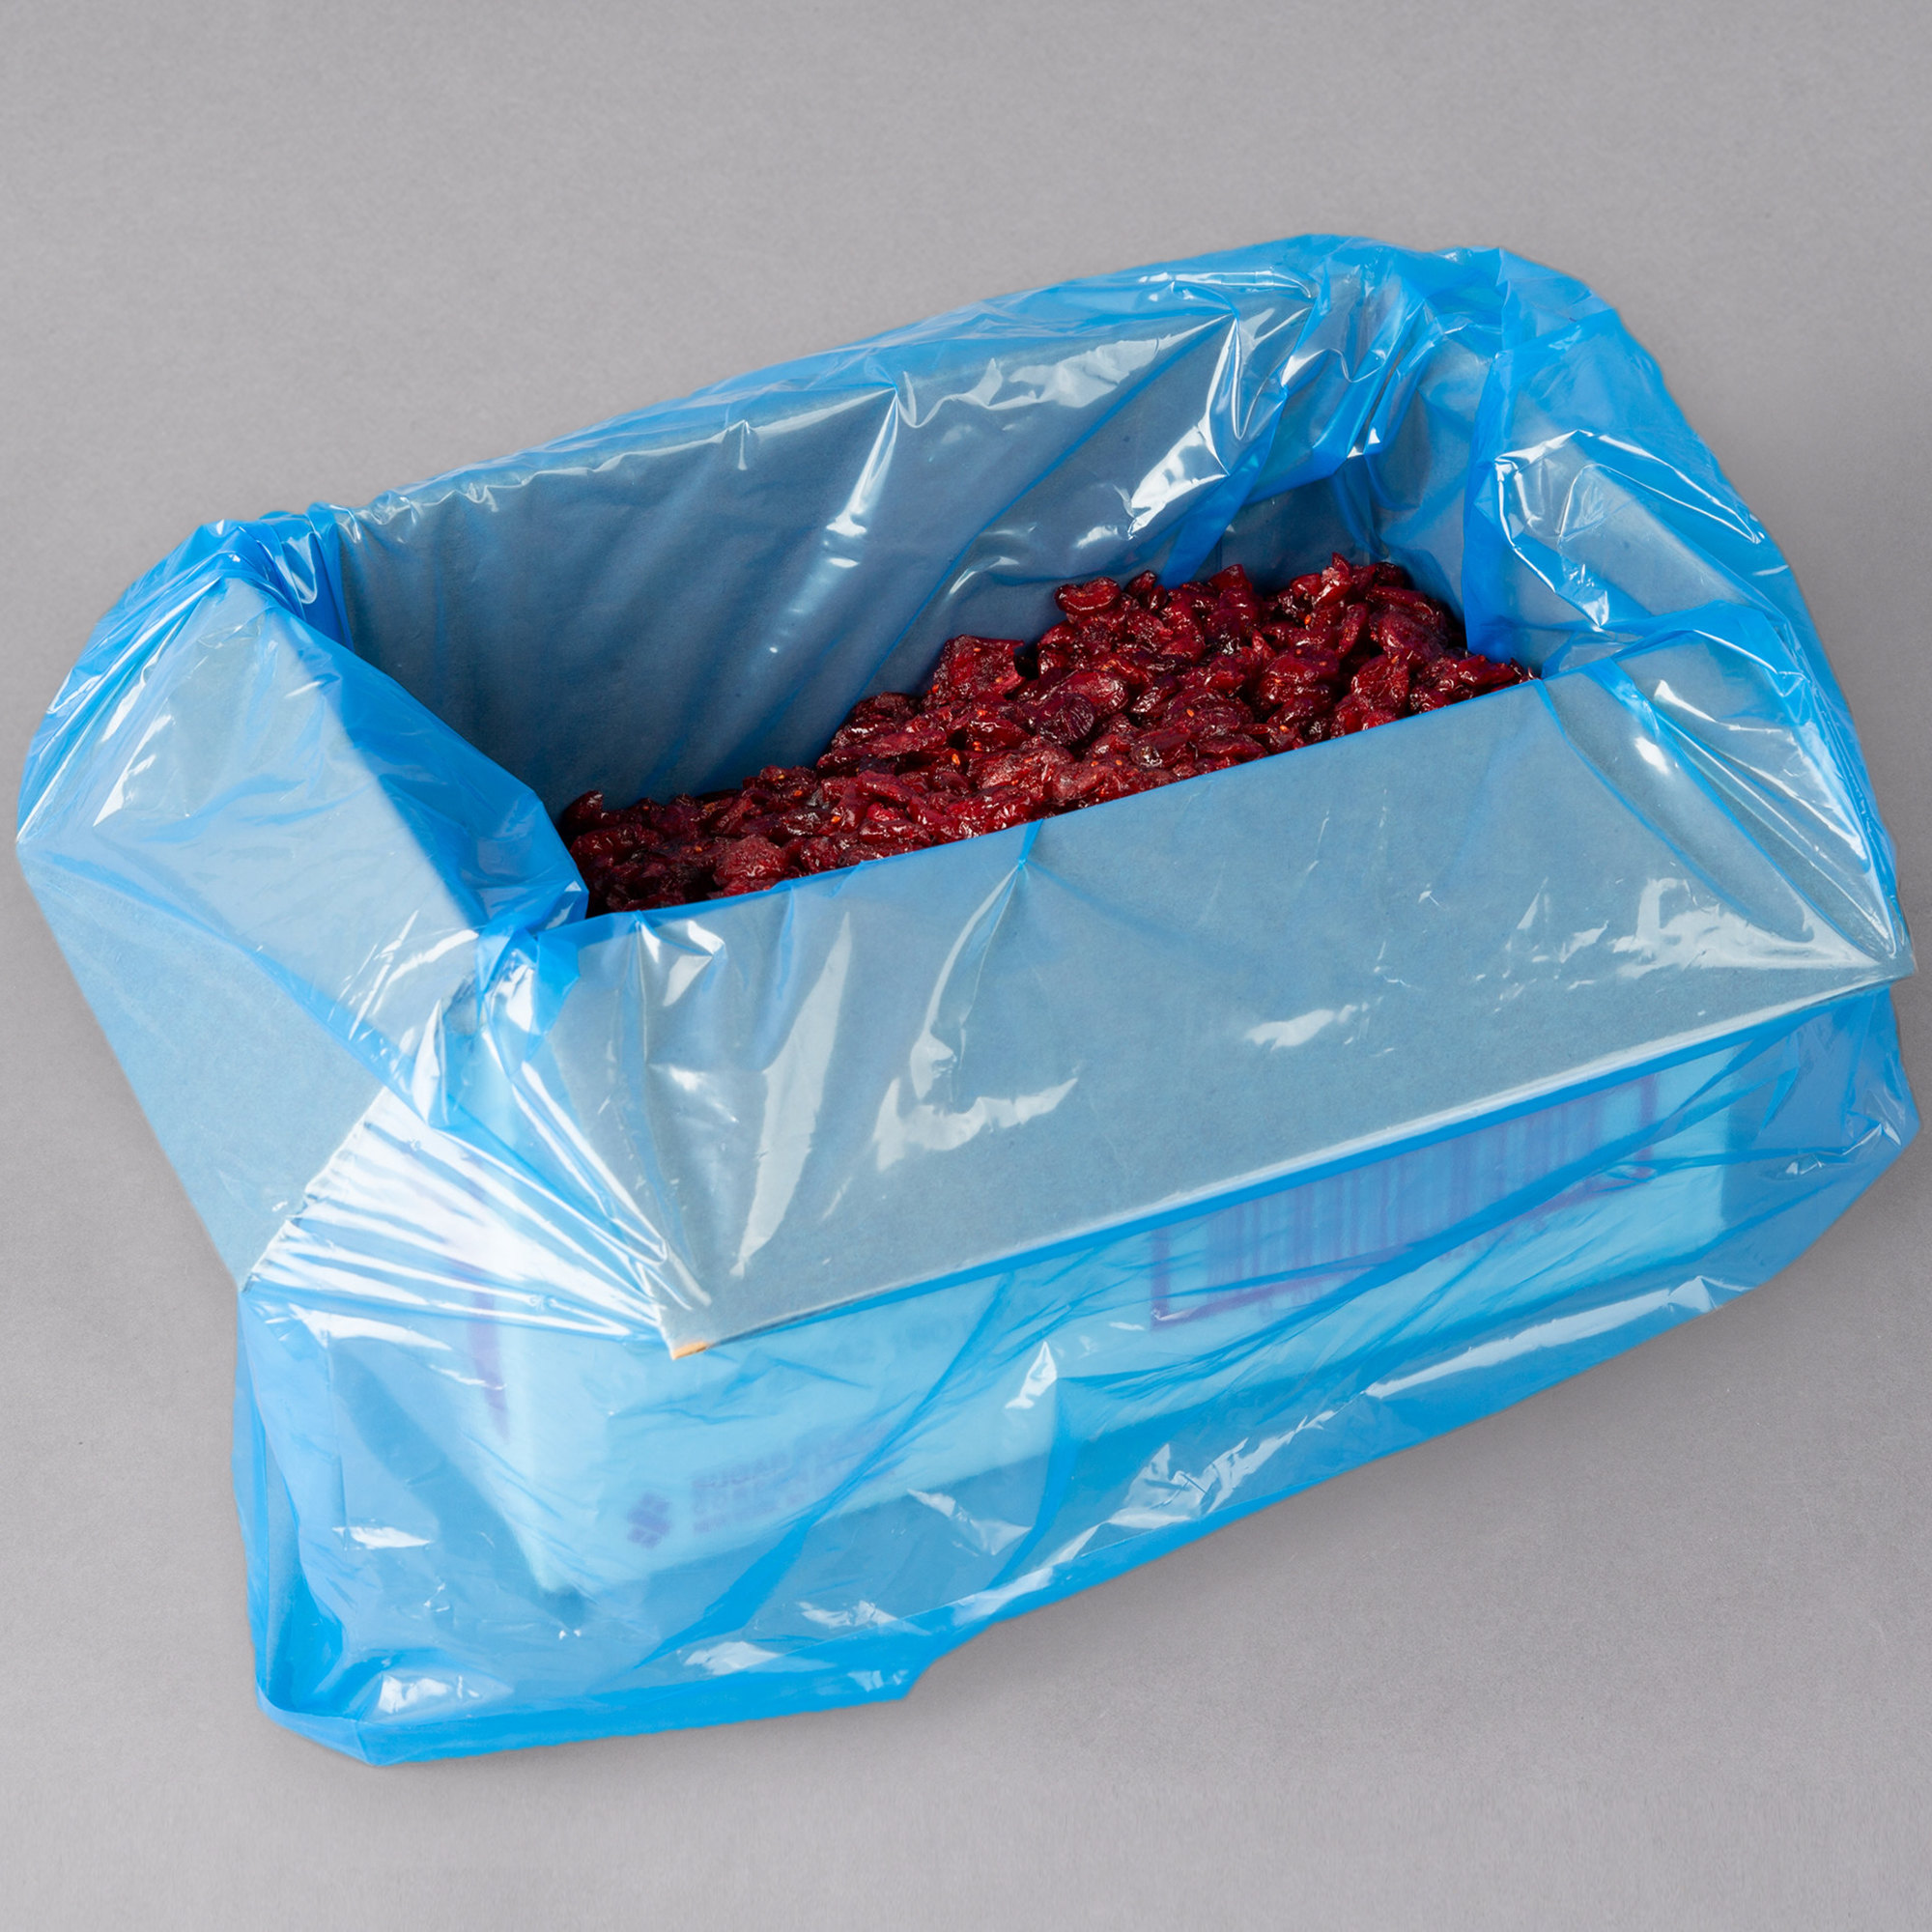 Клюква вяленая, подслащенная Fresh Gourmet® Infused Dried Cranberries, 2,26kg\5 lb. #FGIDC5LB